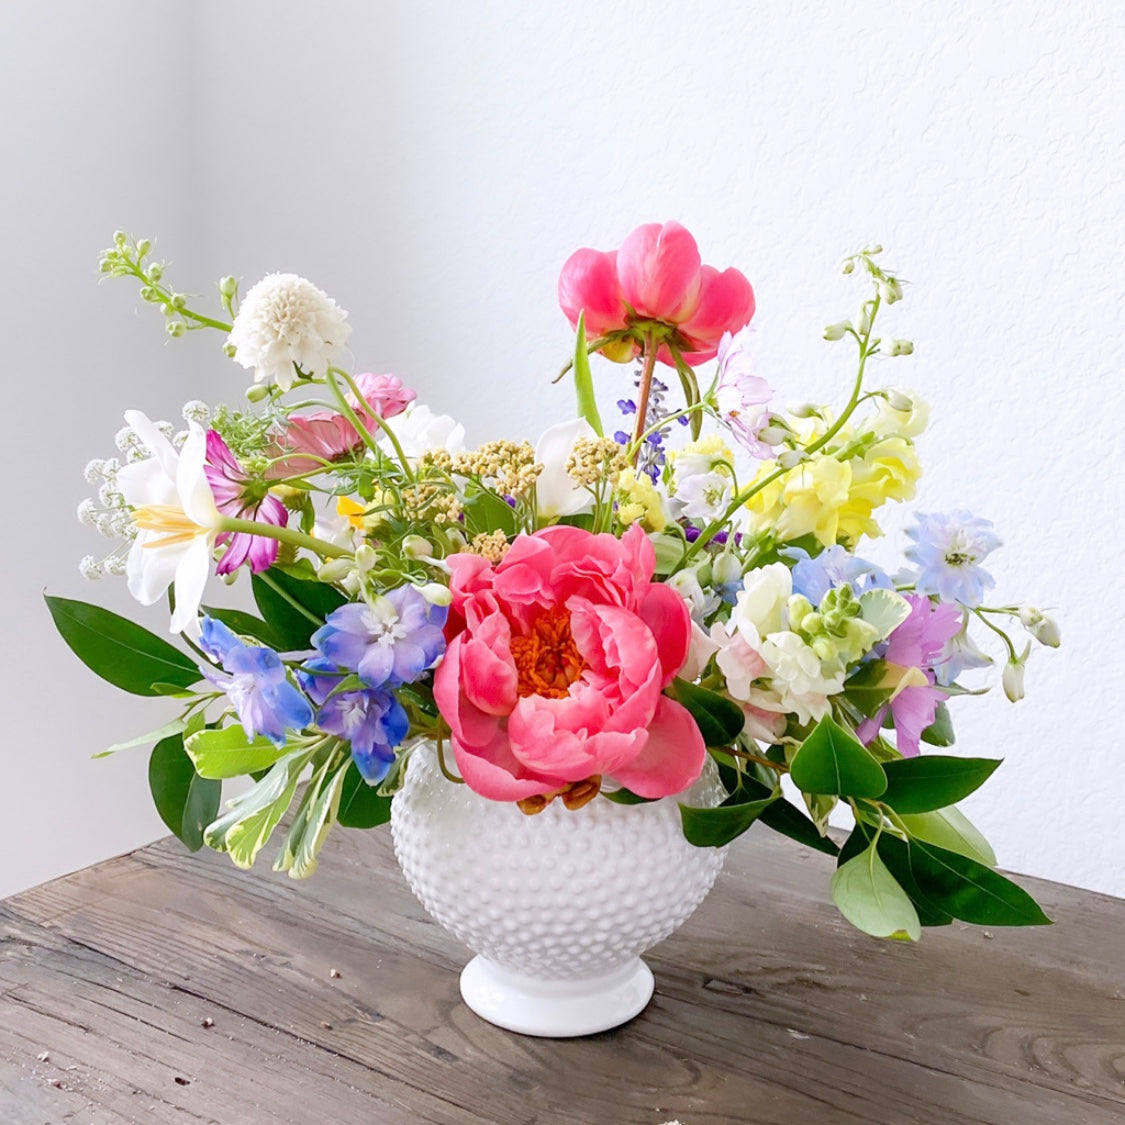 Small Bespoke Flower Arrangement - The Weekend Flow - Houston Florals and Fine Jewelry